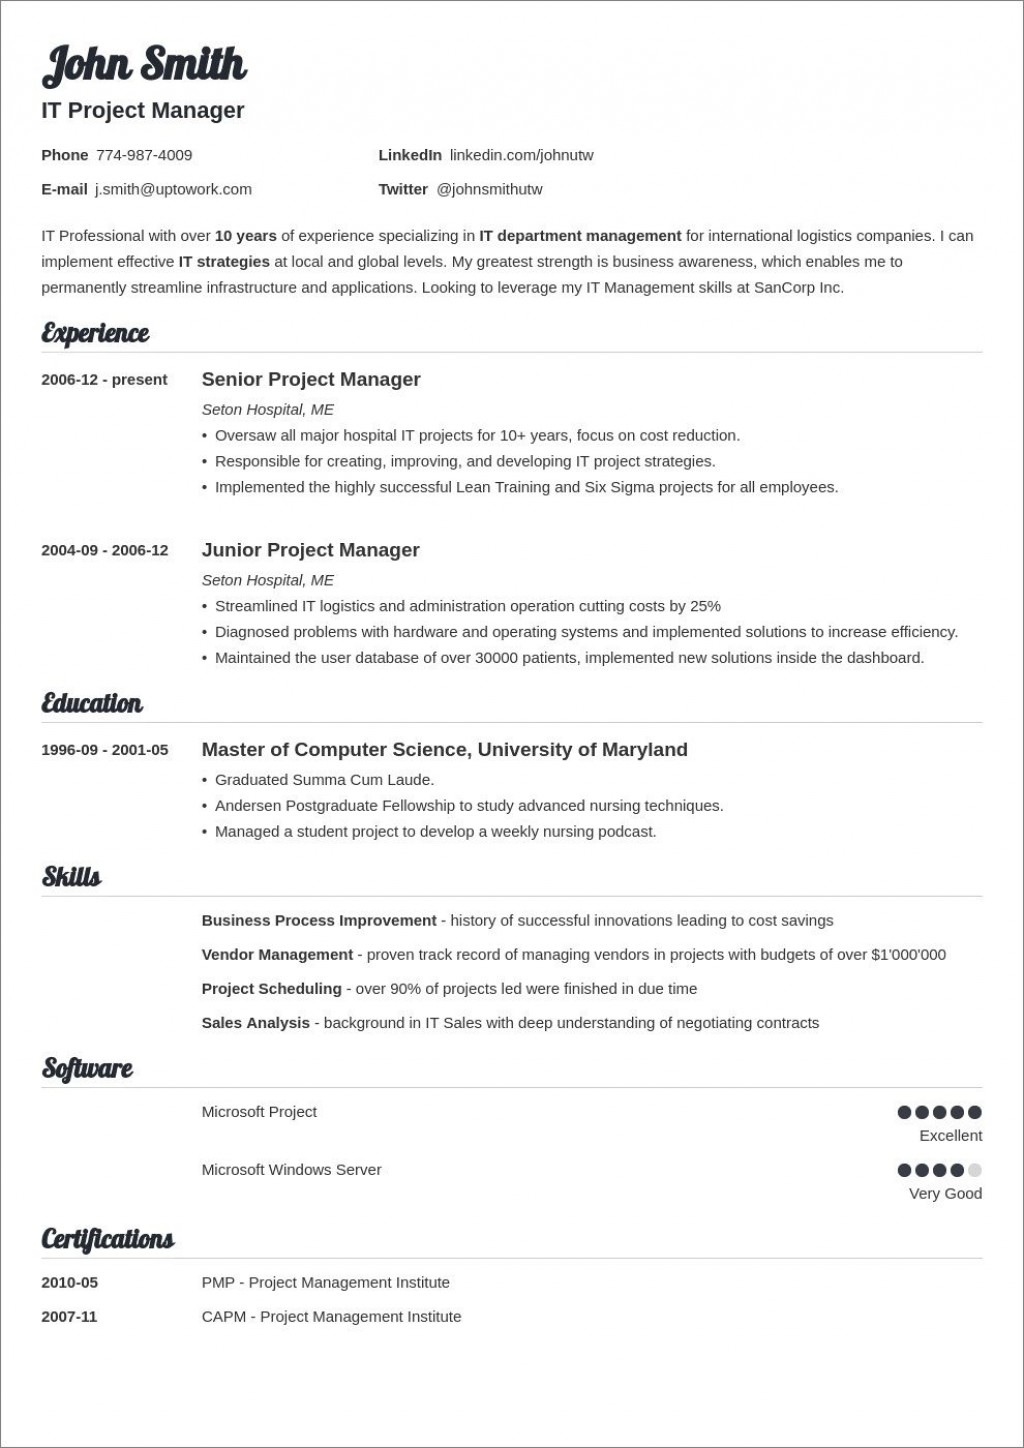 007 Archaicawful Basic Resume Template Word Example  Free Download 2020Large